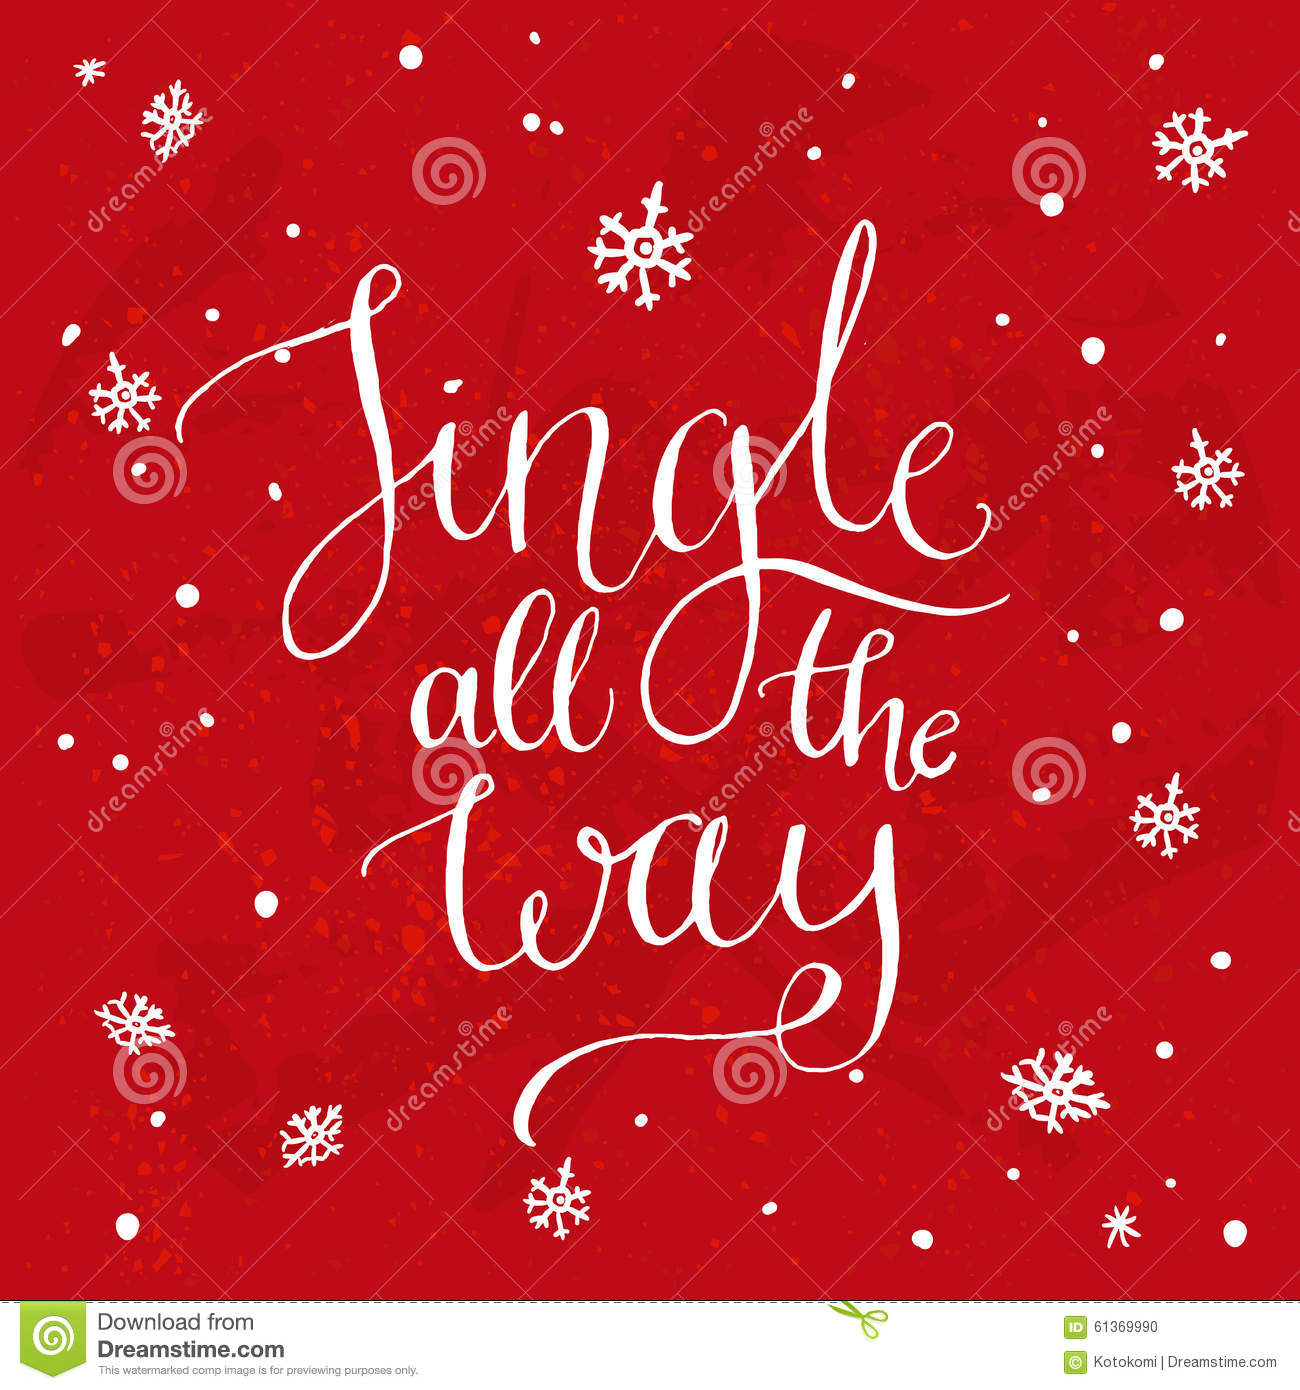 Jingle all the way christmas song inspirational stock vector christmas song inspirational quote vector calligraphy for greeting cards at red background m4hsunfo